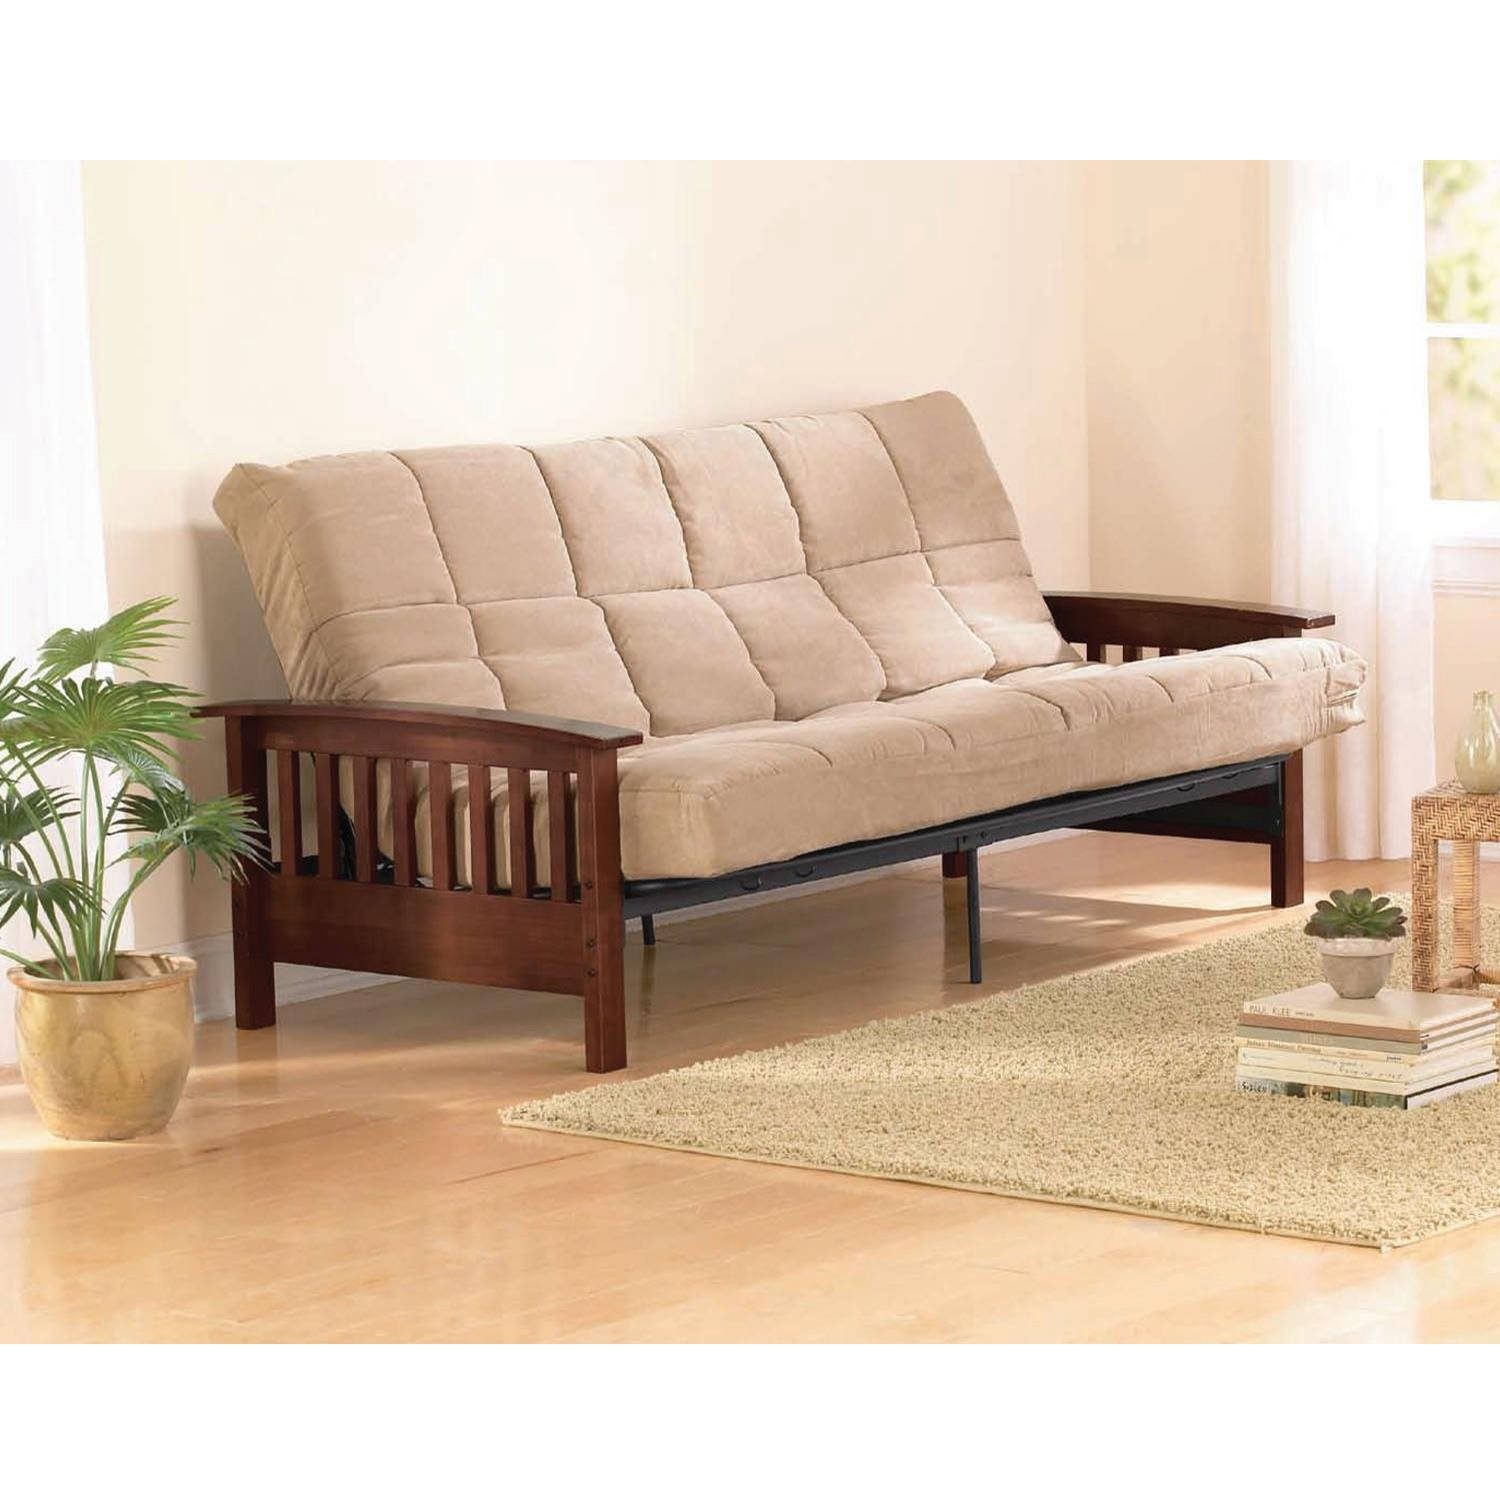 design of futon convertible bed size large mattress sofa couch full chair